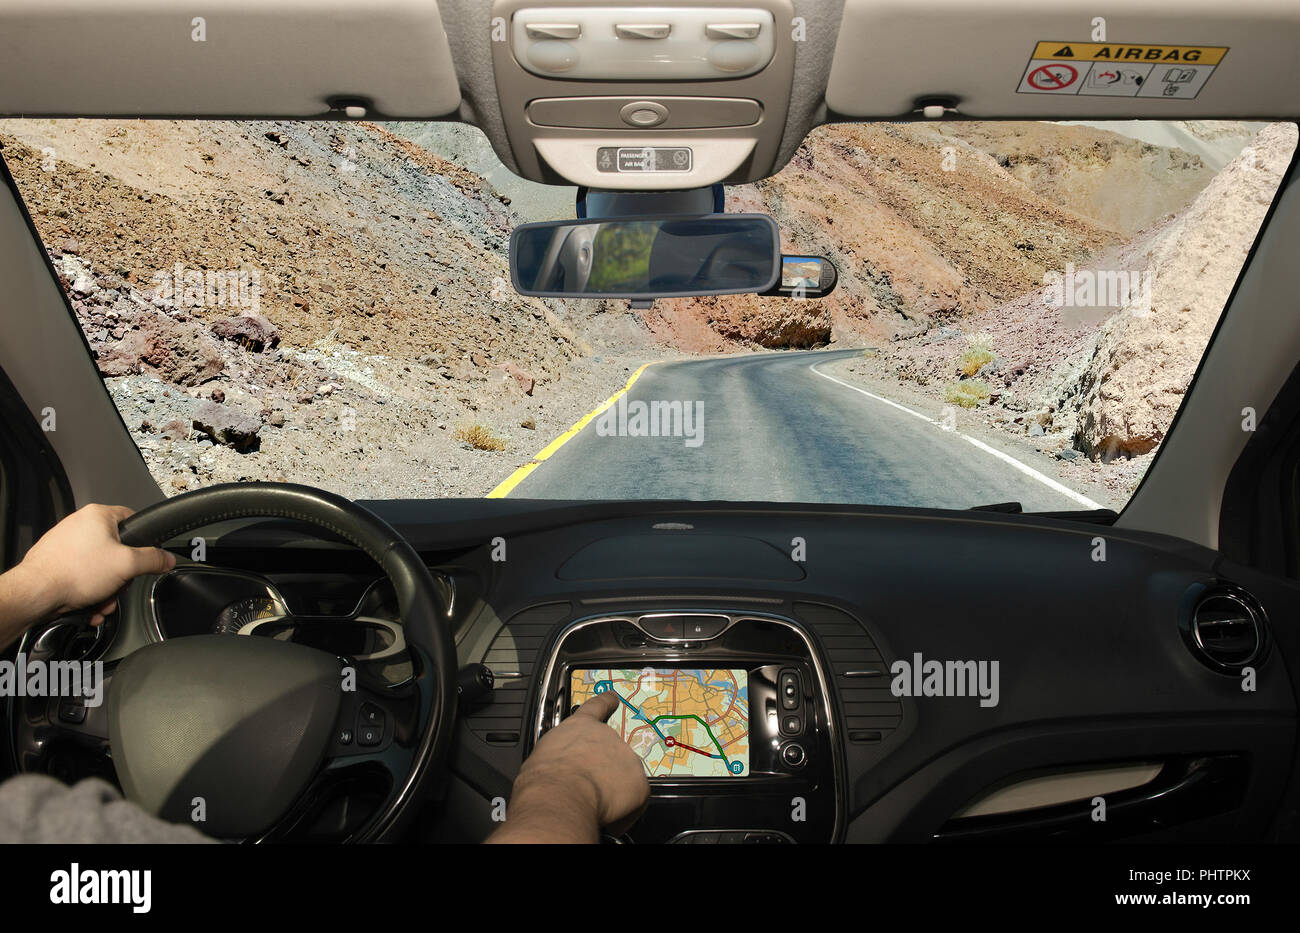 Driving a car while using the touch screen of a GPS navigation system towards a desert road, Death Valley, USA - Stock Image